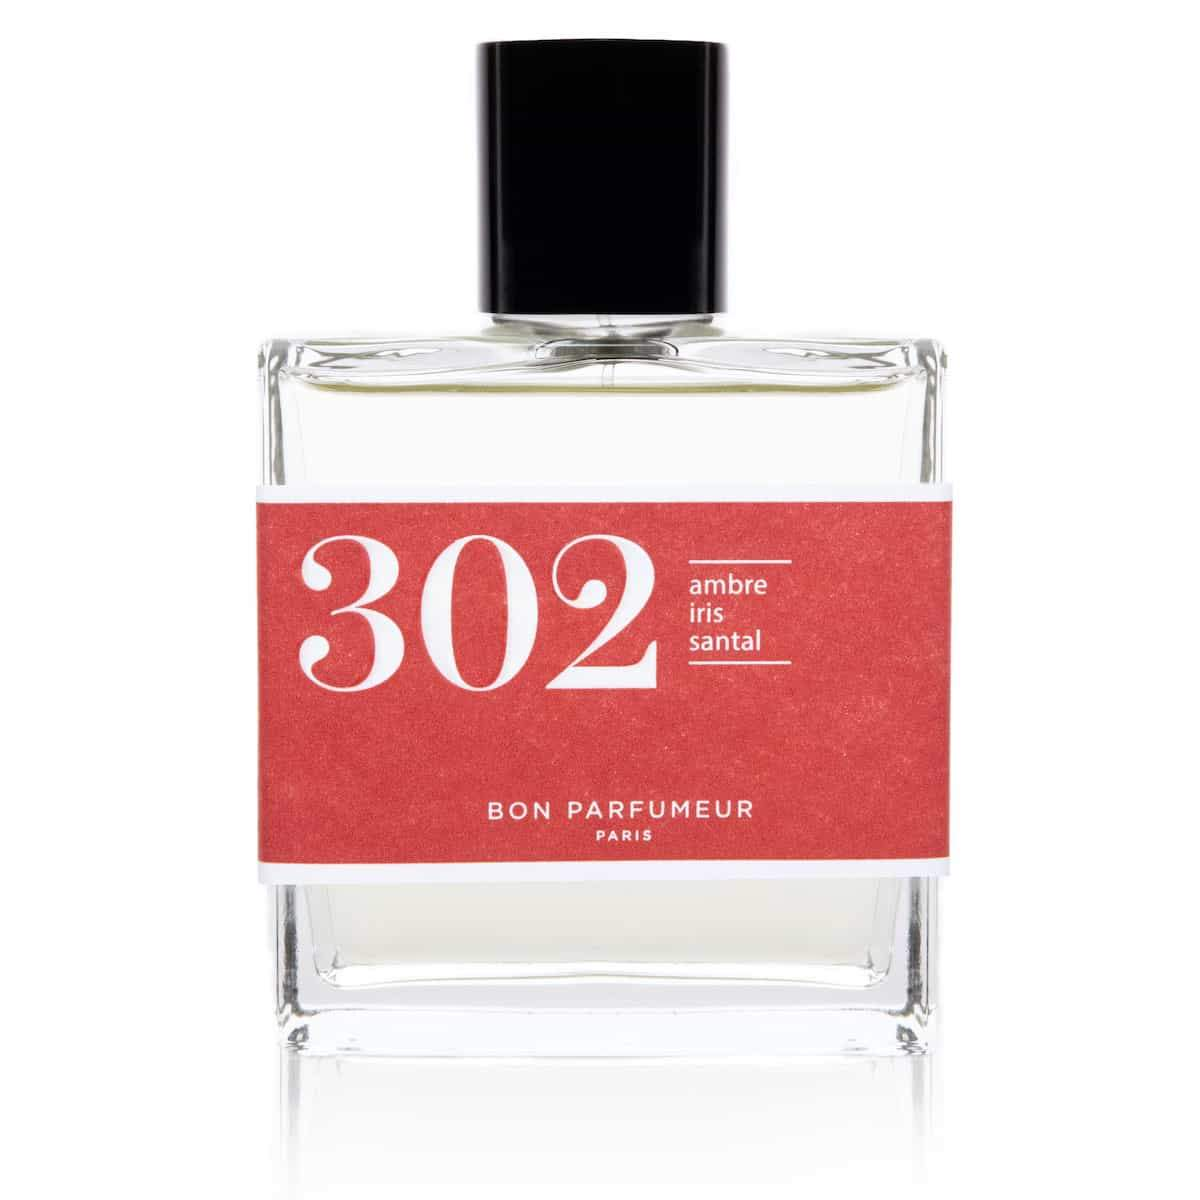 Eau de parfum 302: amber, iris and sandalwood